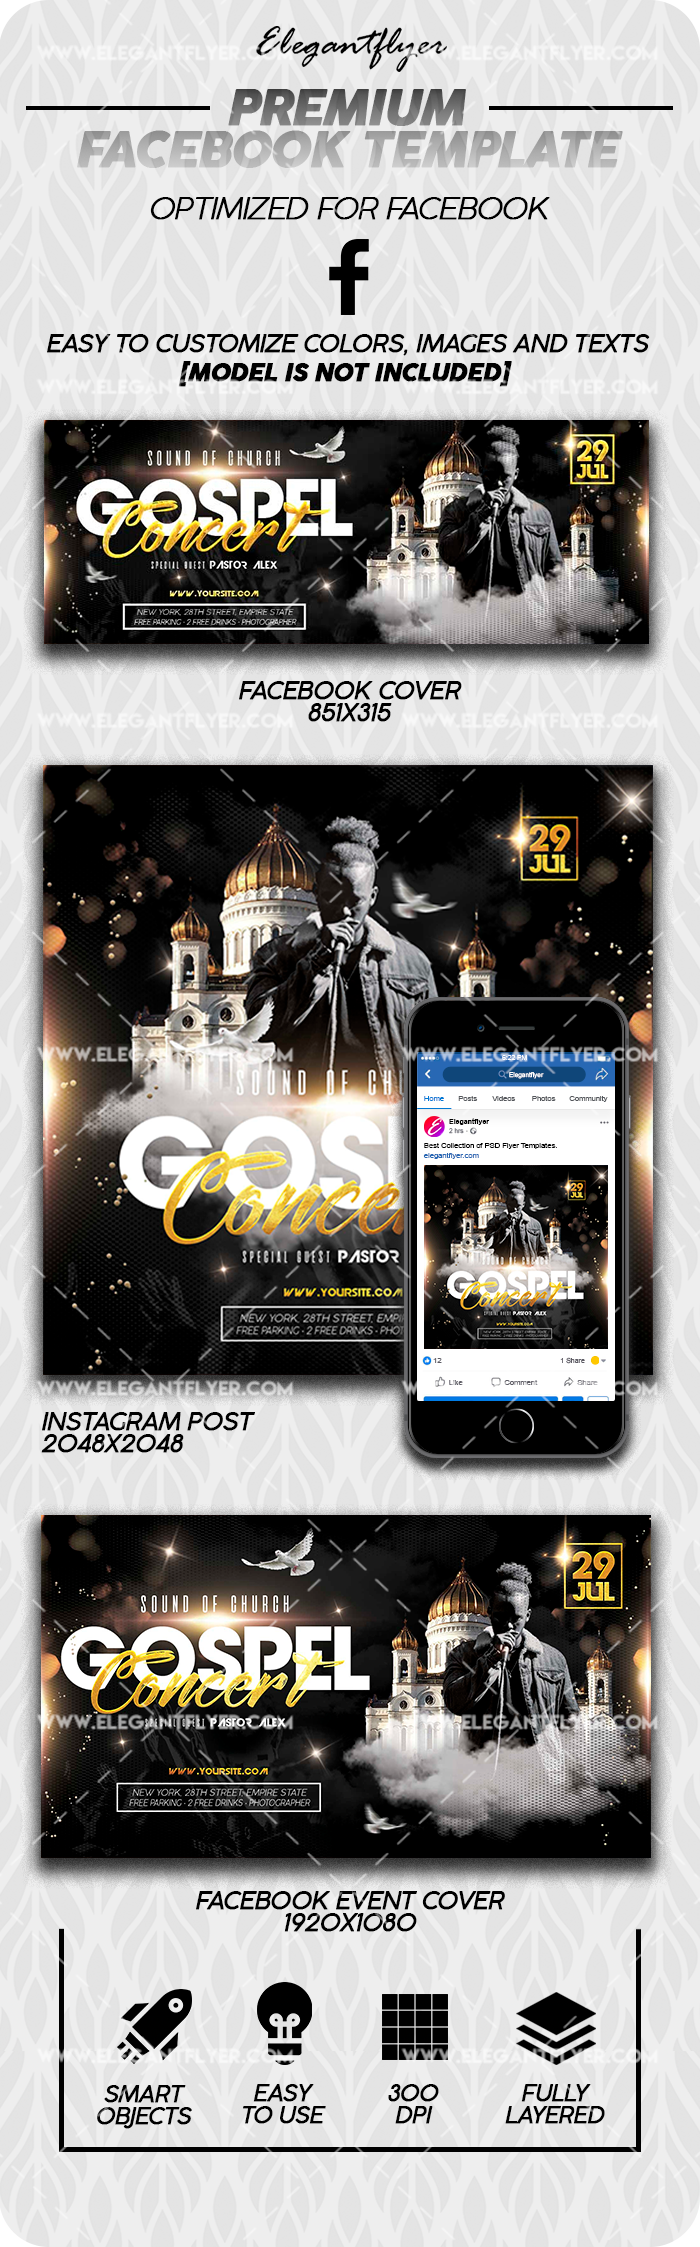 Gospel Concert – Premium Facebook Cover Template in PSD + Post + Event cover